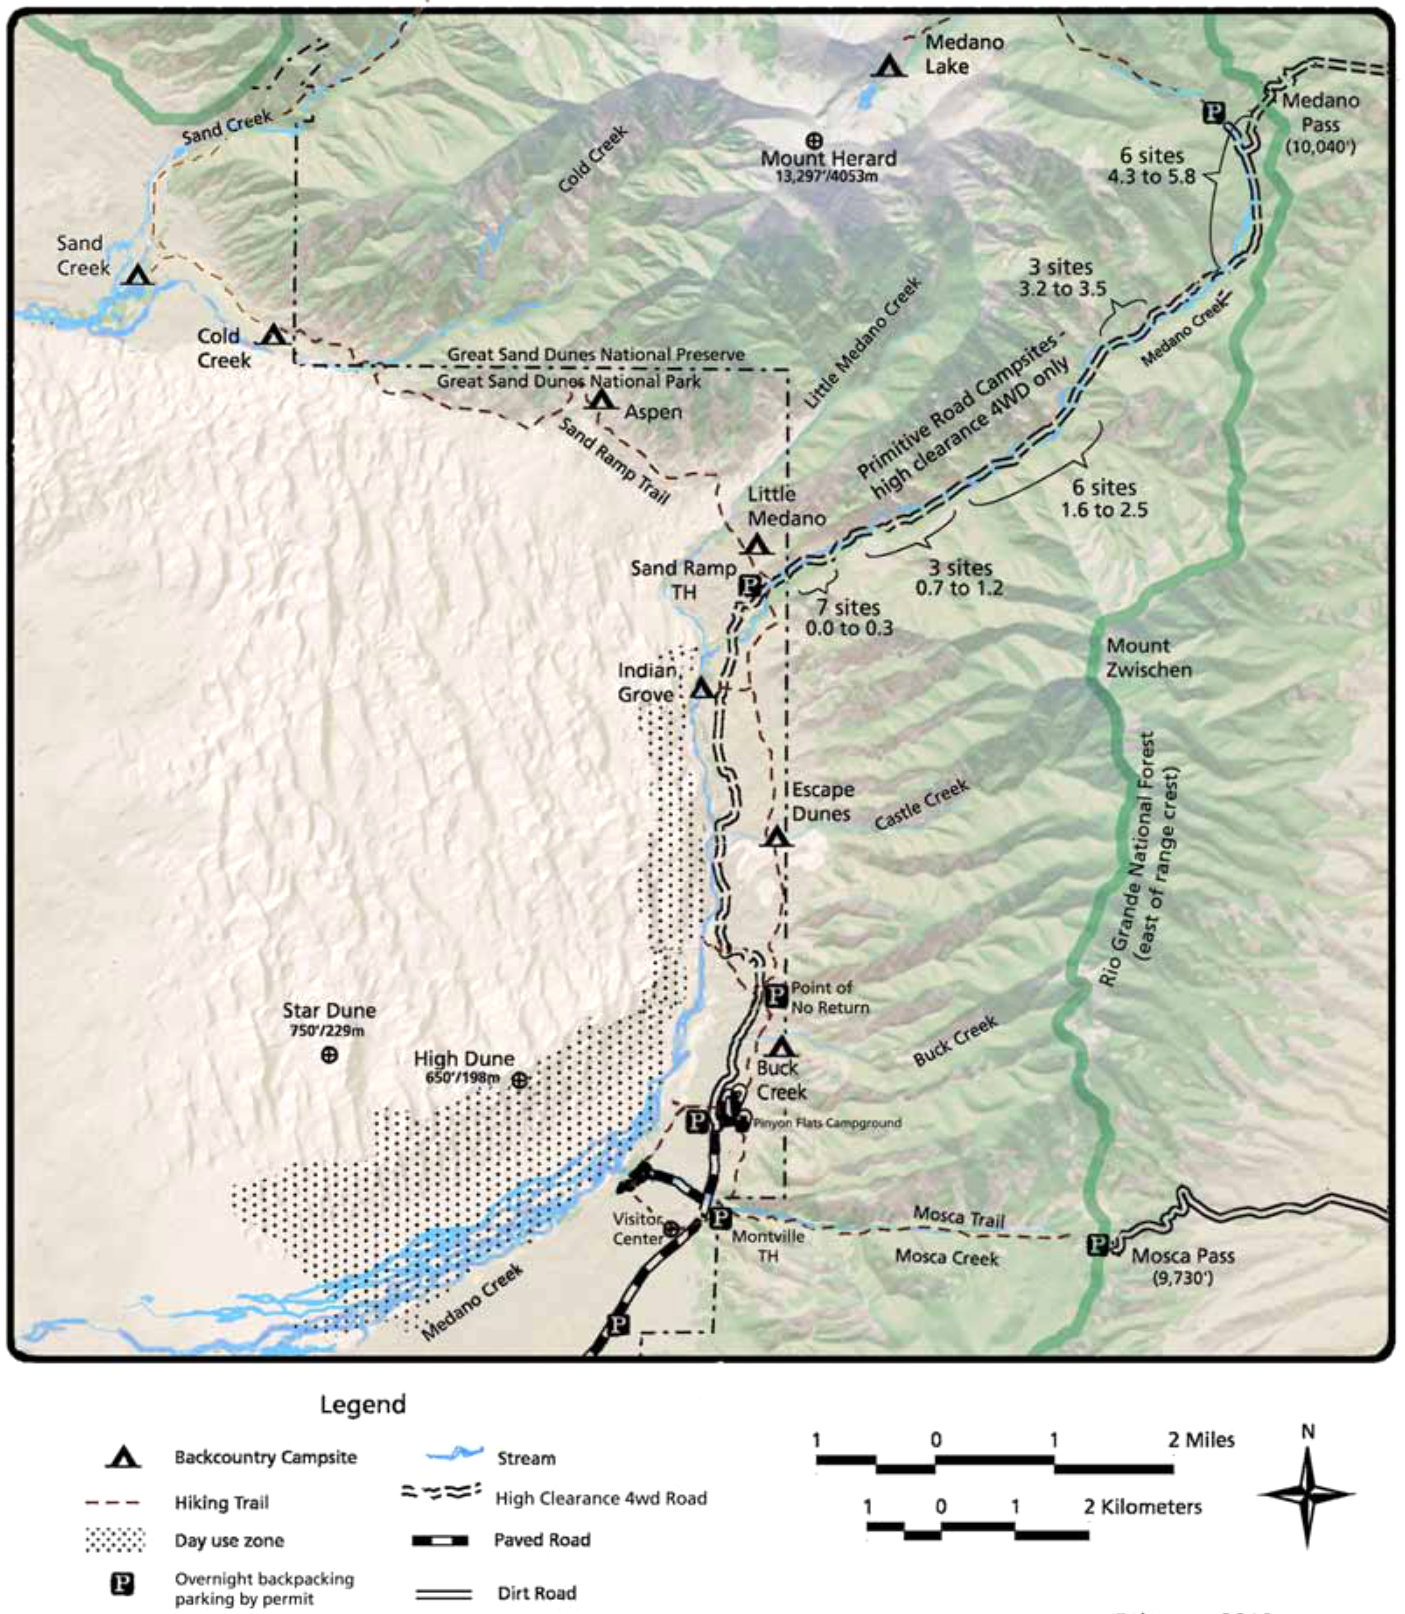 Great Sand Dunes Maps NPMapscom just free maps period